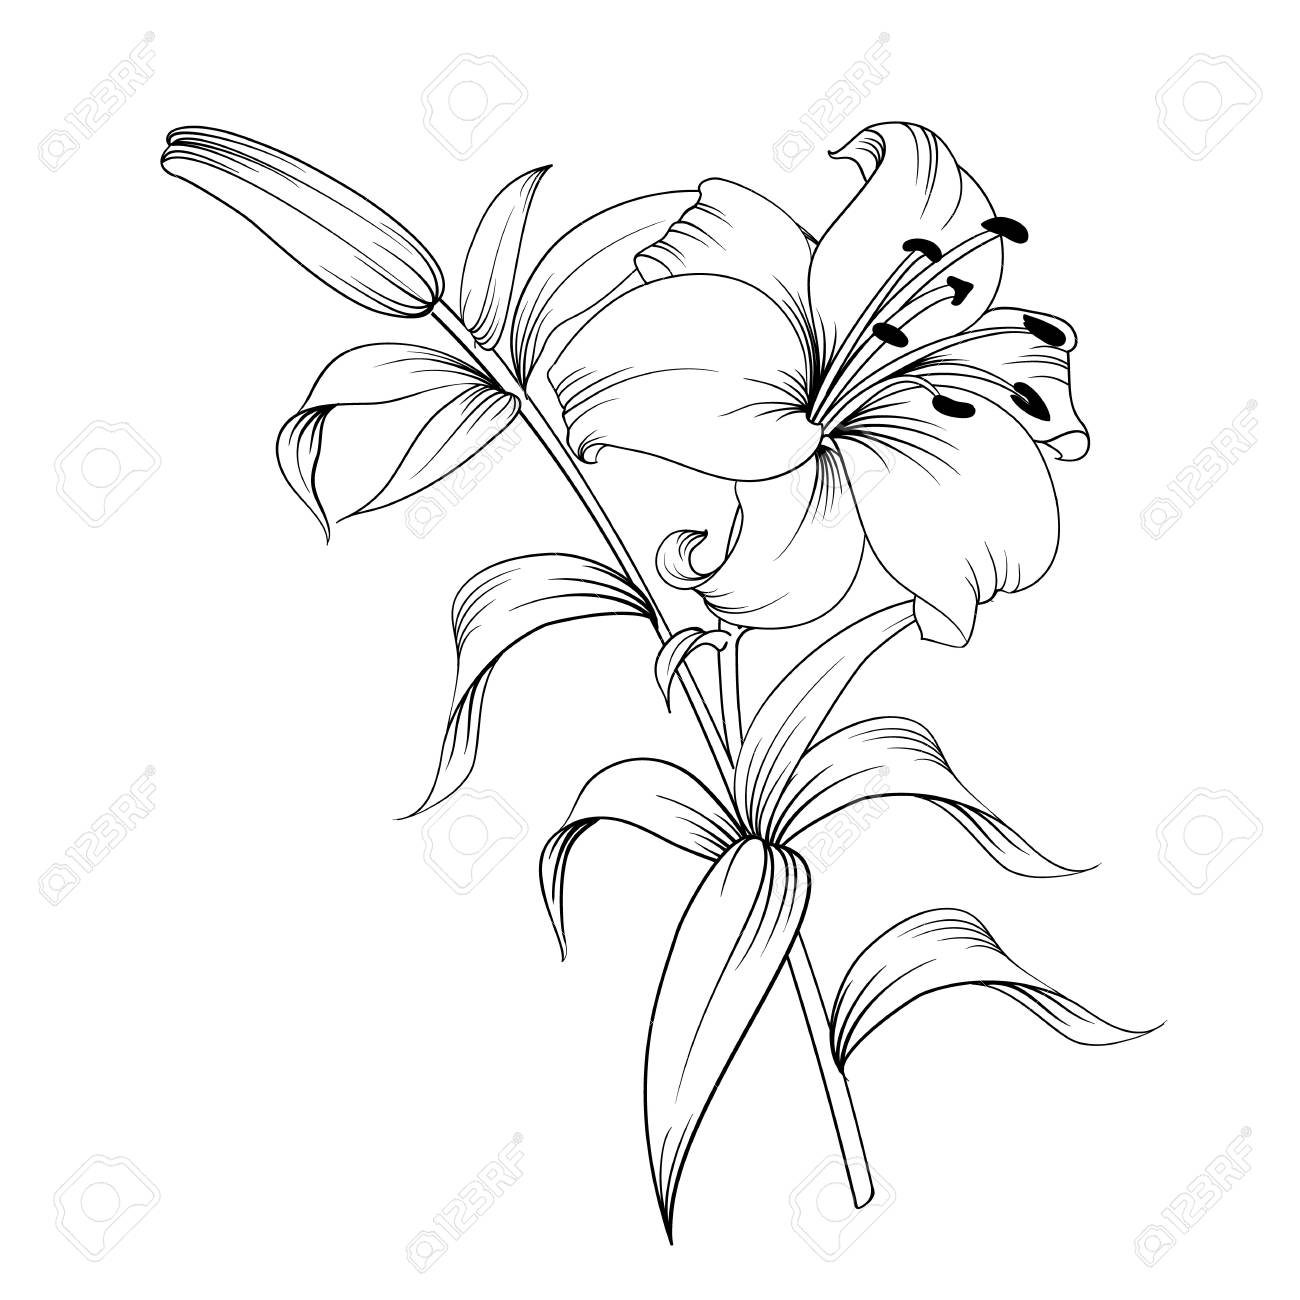 White lily isolated on a white background. Card with blooming lily. Vector illustration. - 98199144